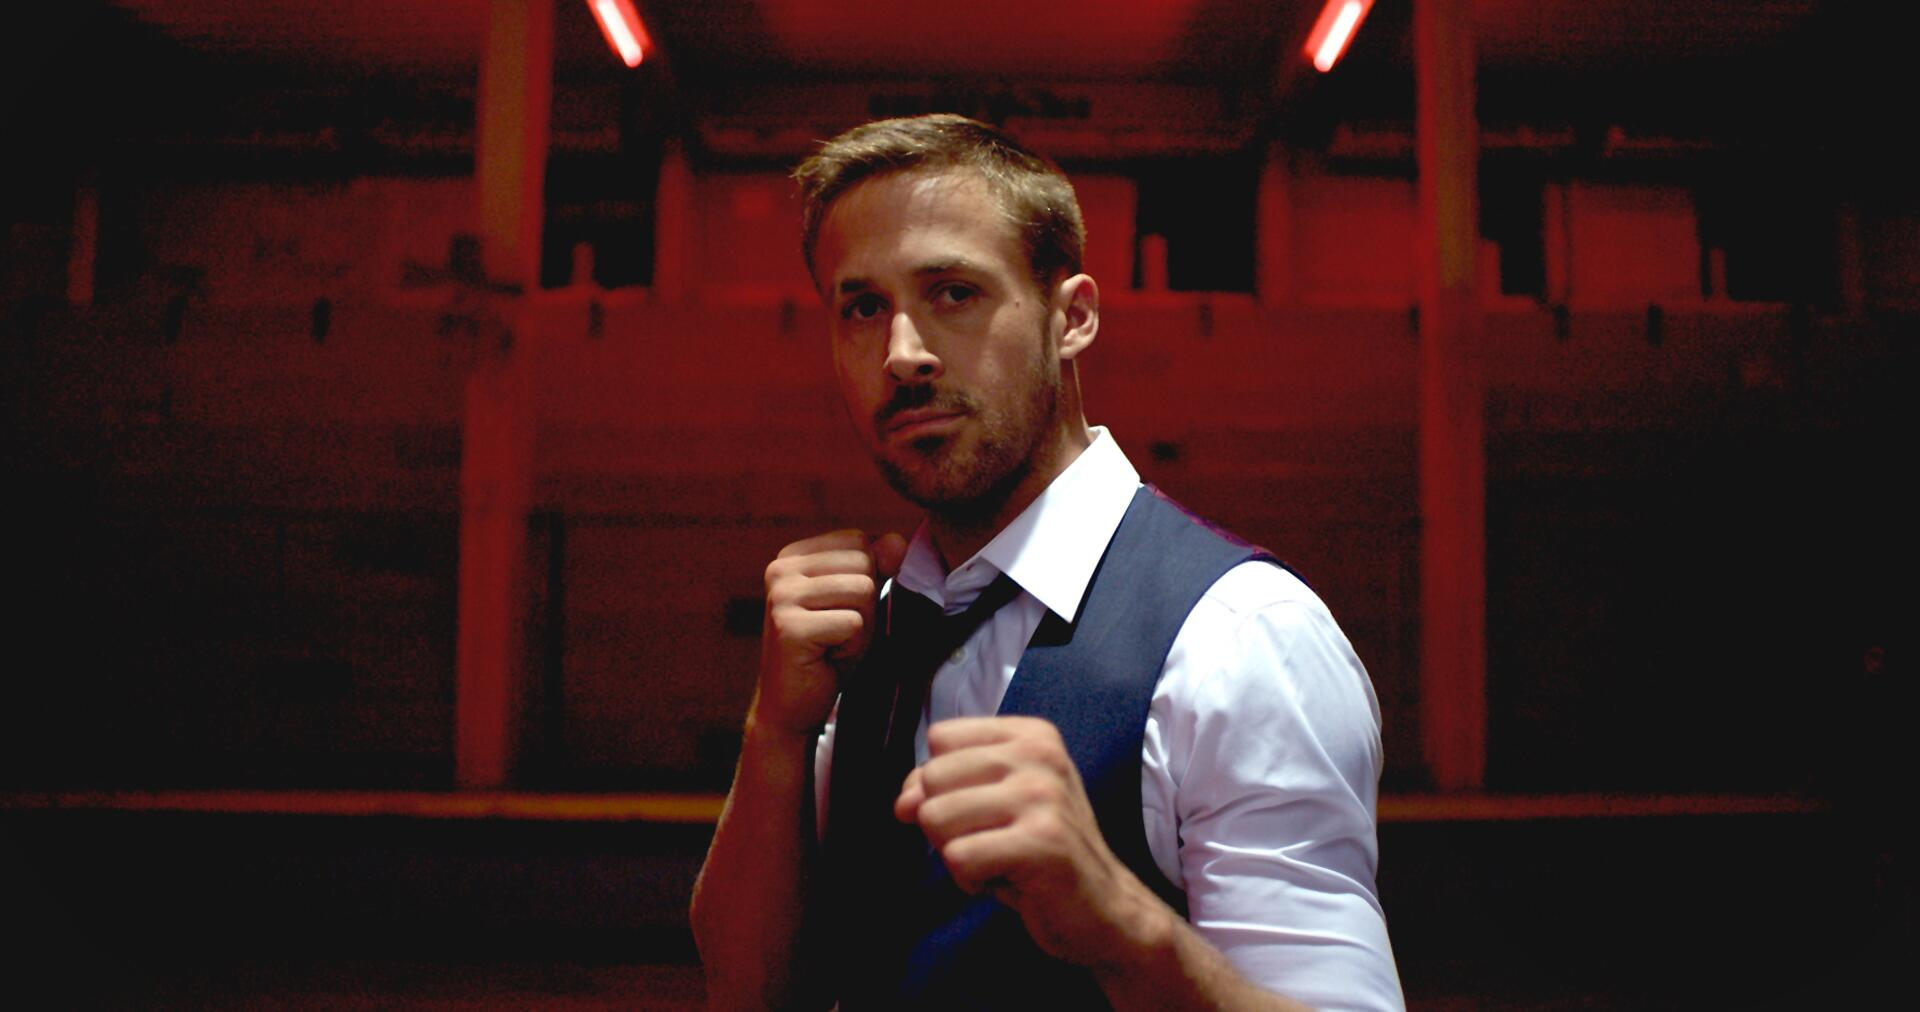 Bild zu Ryan Gosling, Julian, Only God Forgives